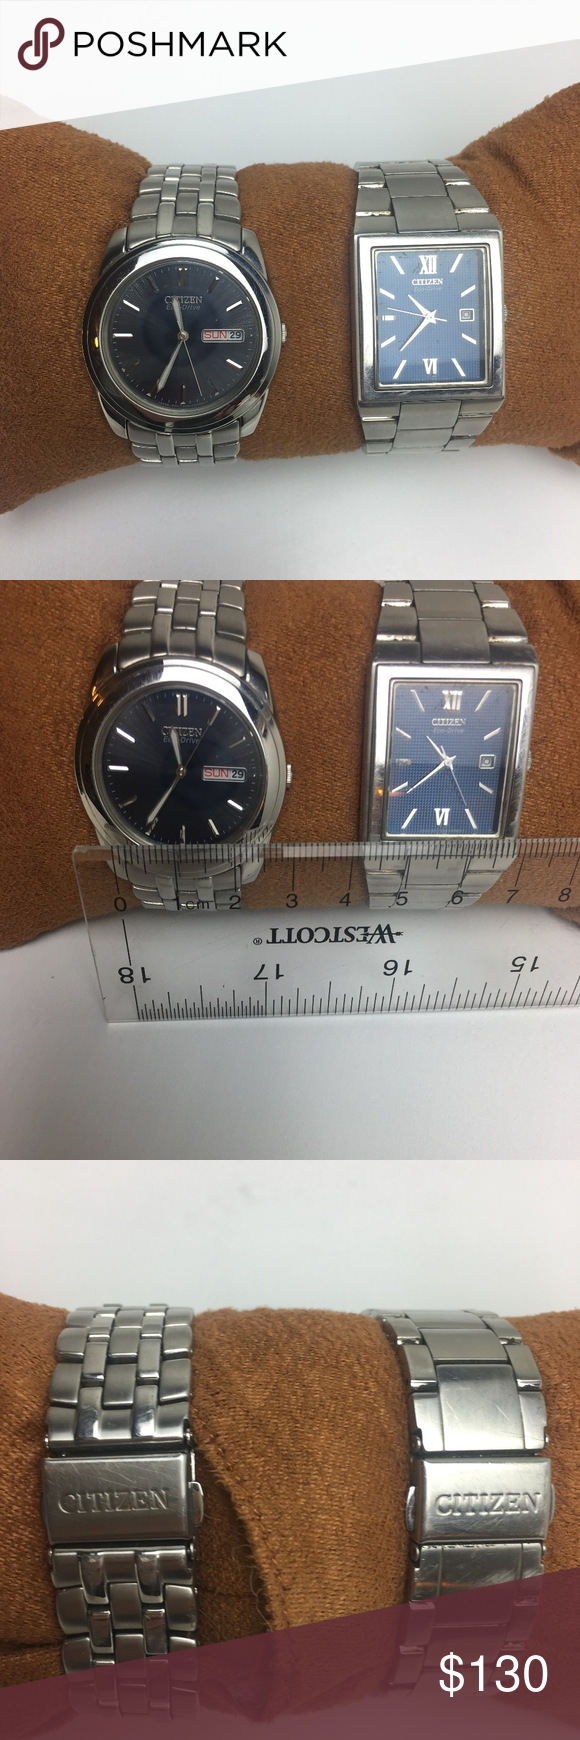 Spotted while shopping on Poshmark GUC MENS CITIZEN STAINLESS STEAL WATCH BUNDLE